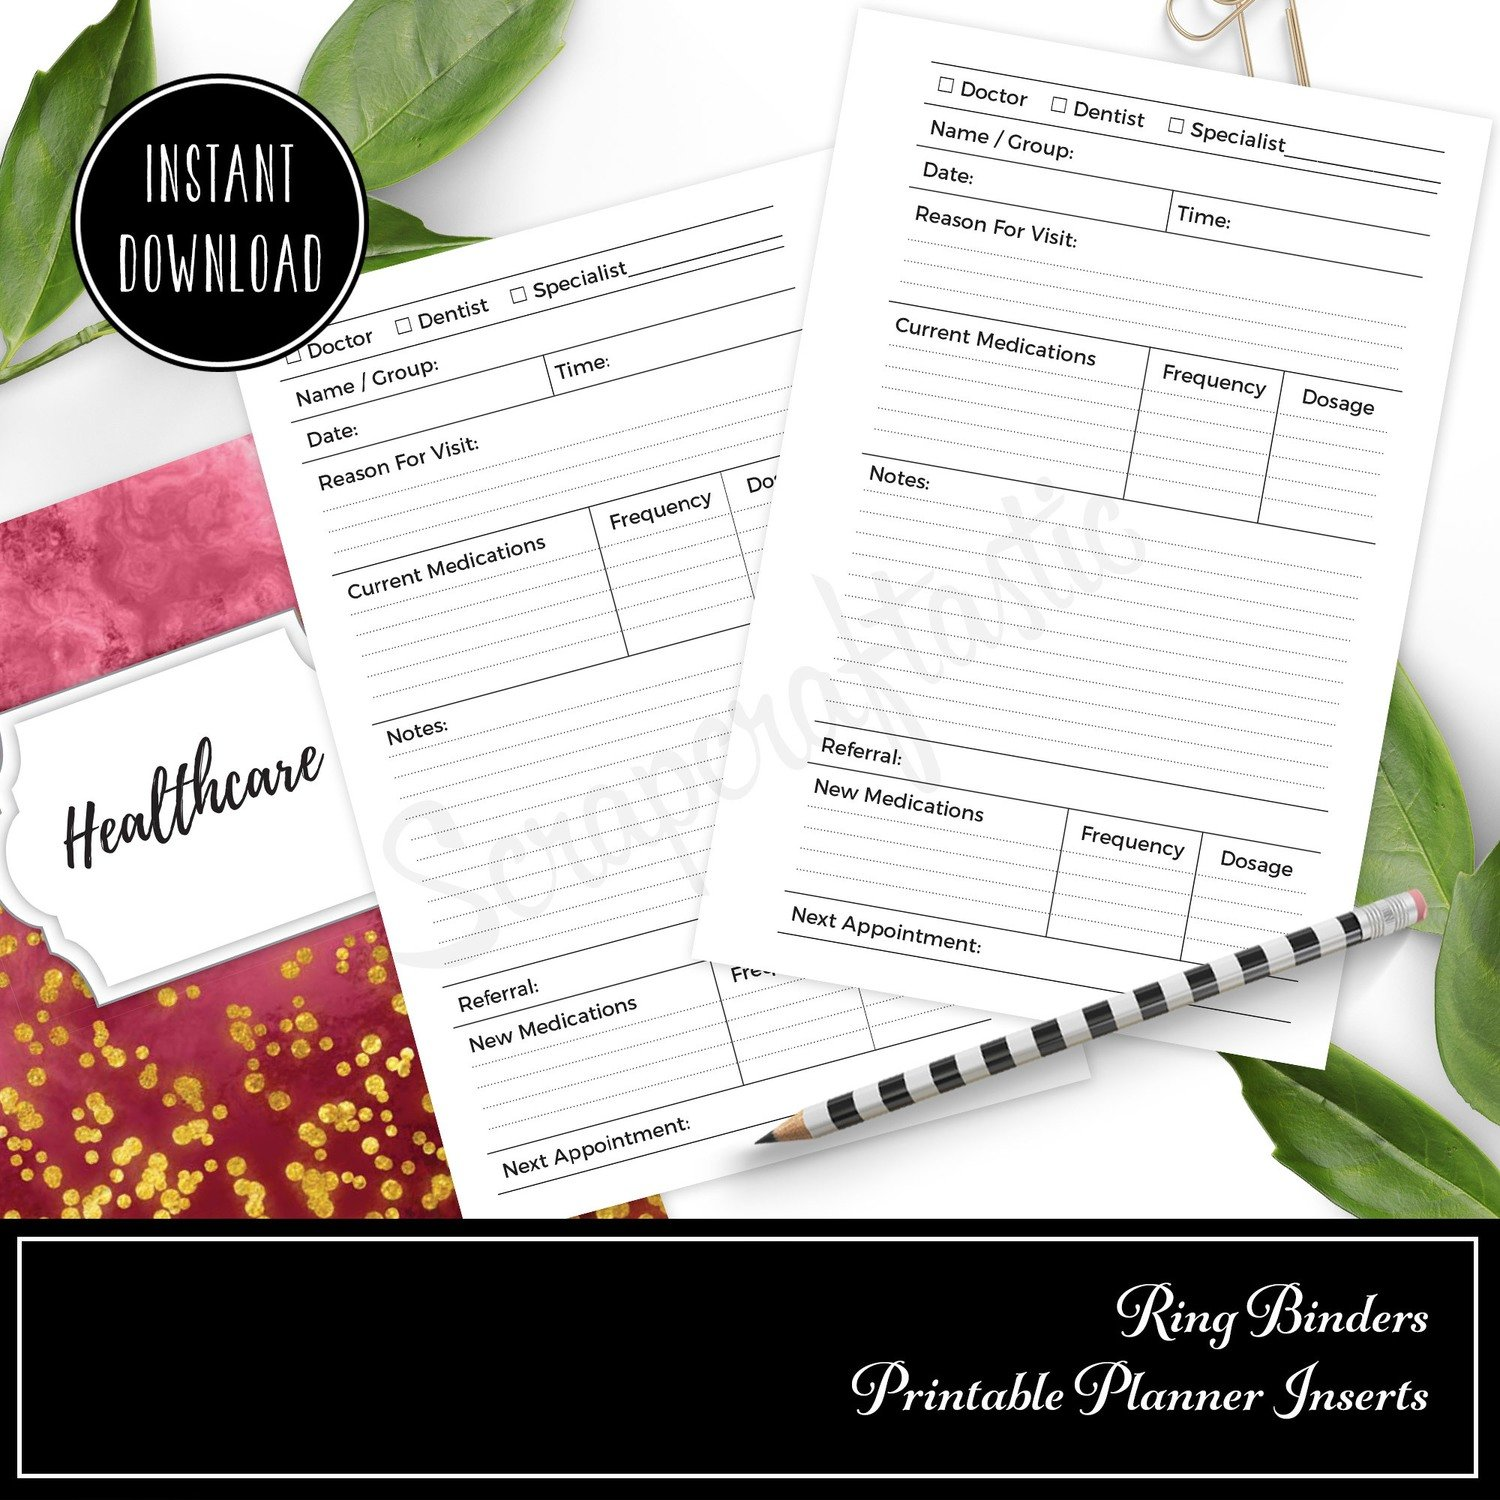 POCKET RINGS - Healthcare Visit Log Ring Binder Printable Insert